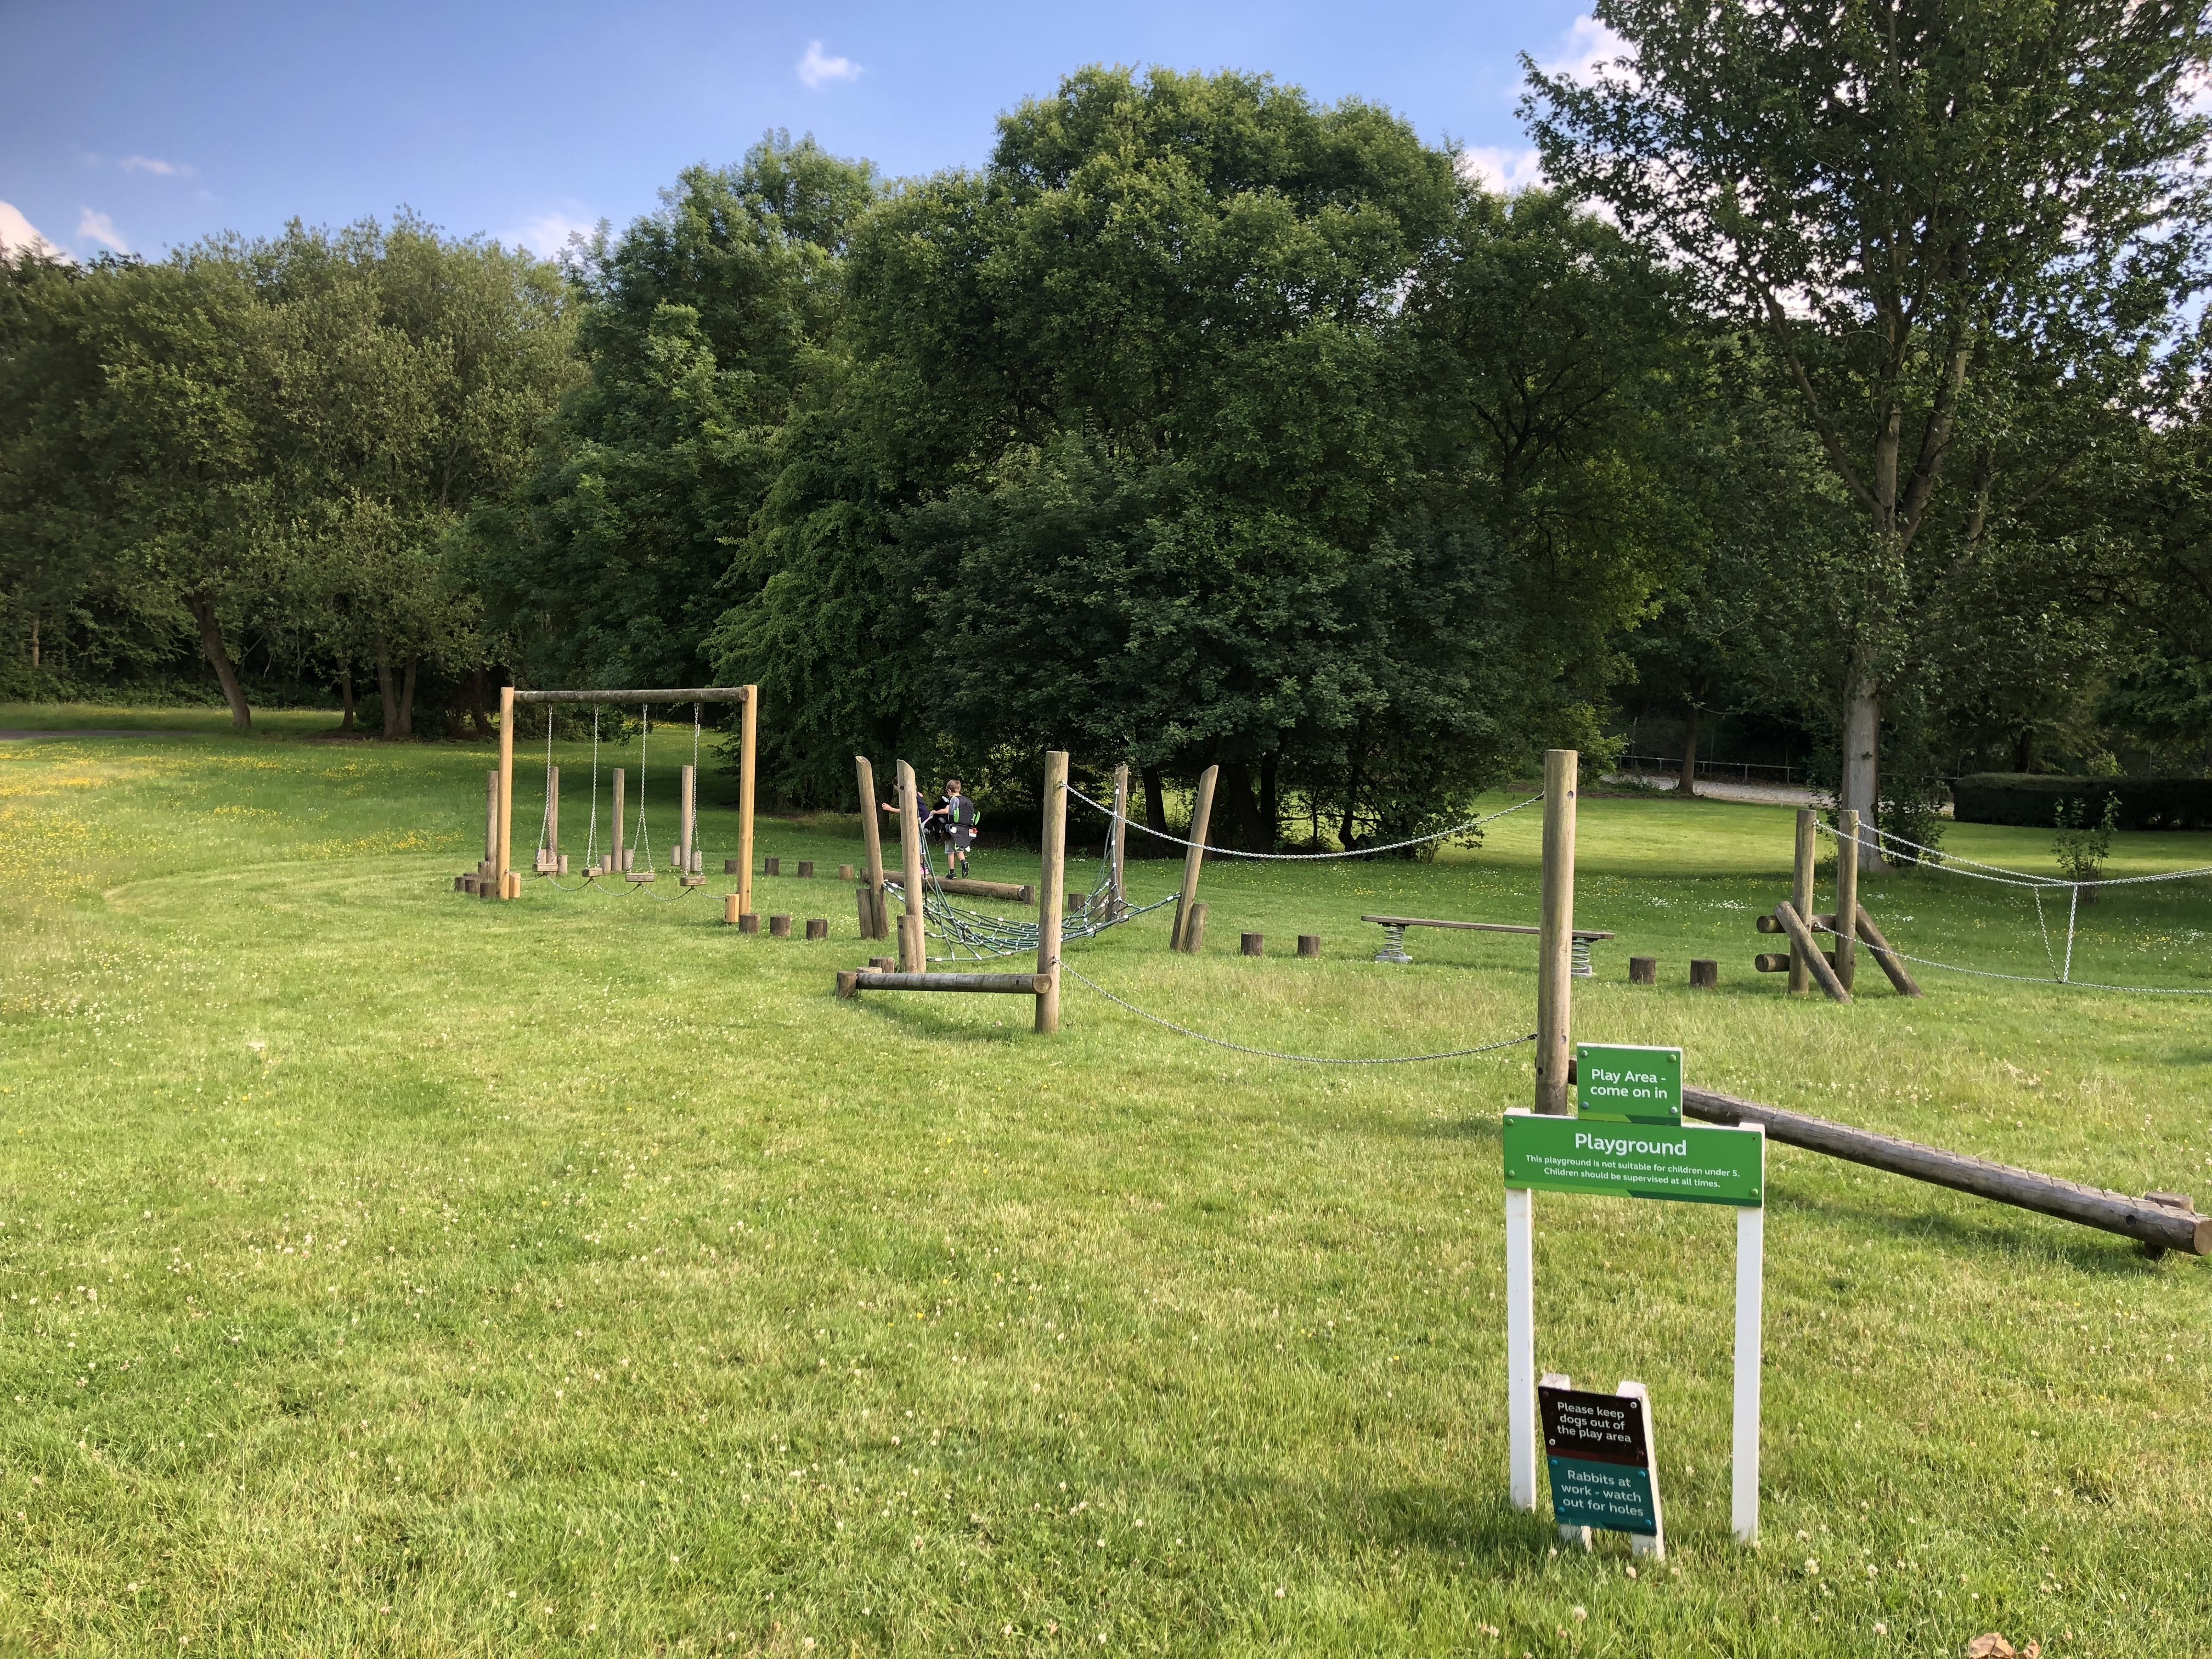 The lovely wooden play area at Alderstead Heath, a Caravan and Motorhome Club site in Surrey.